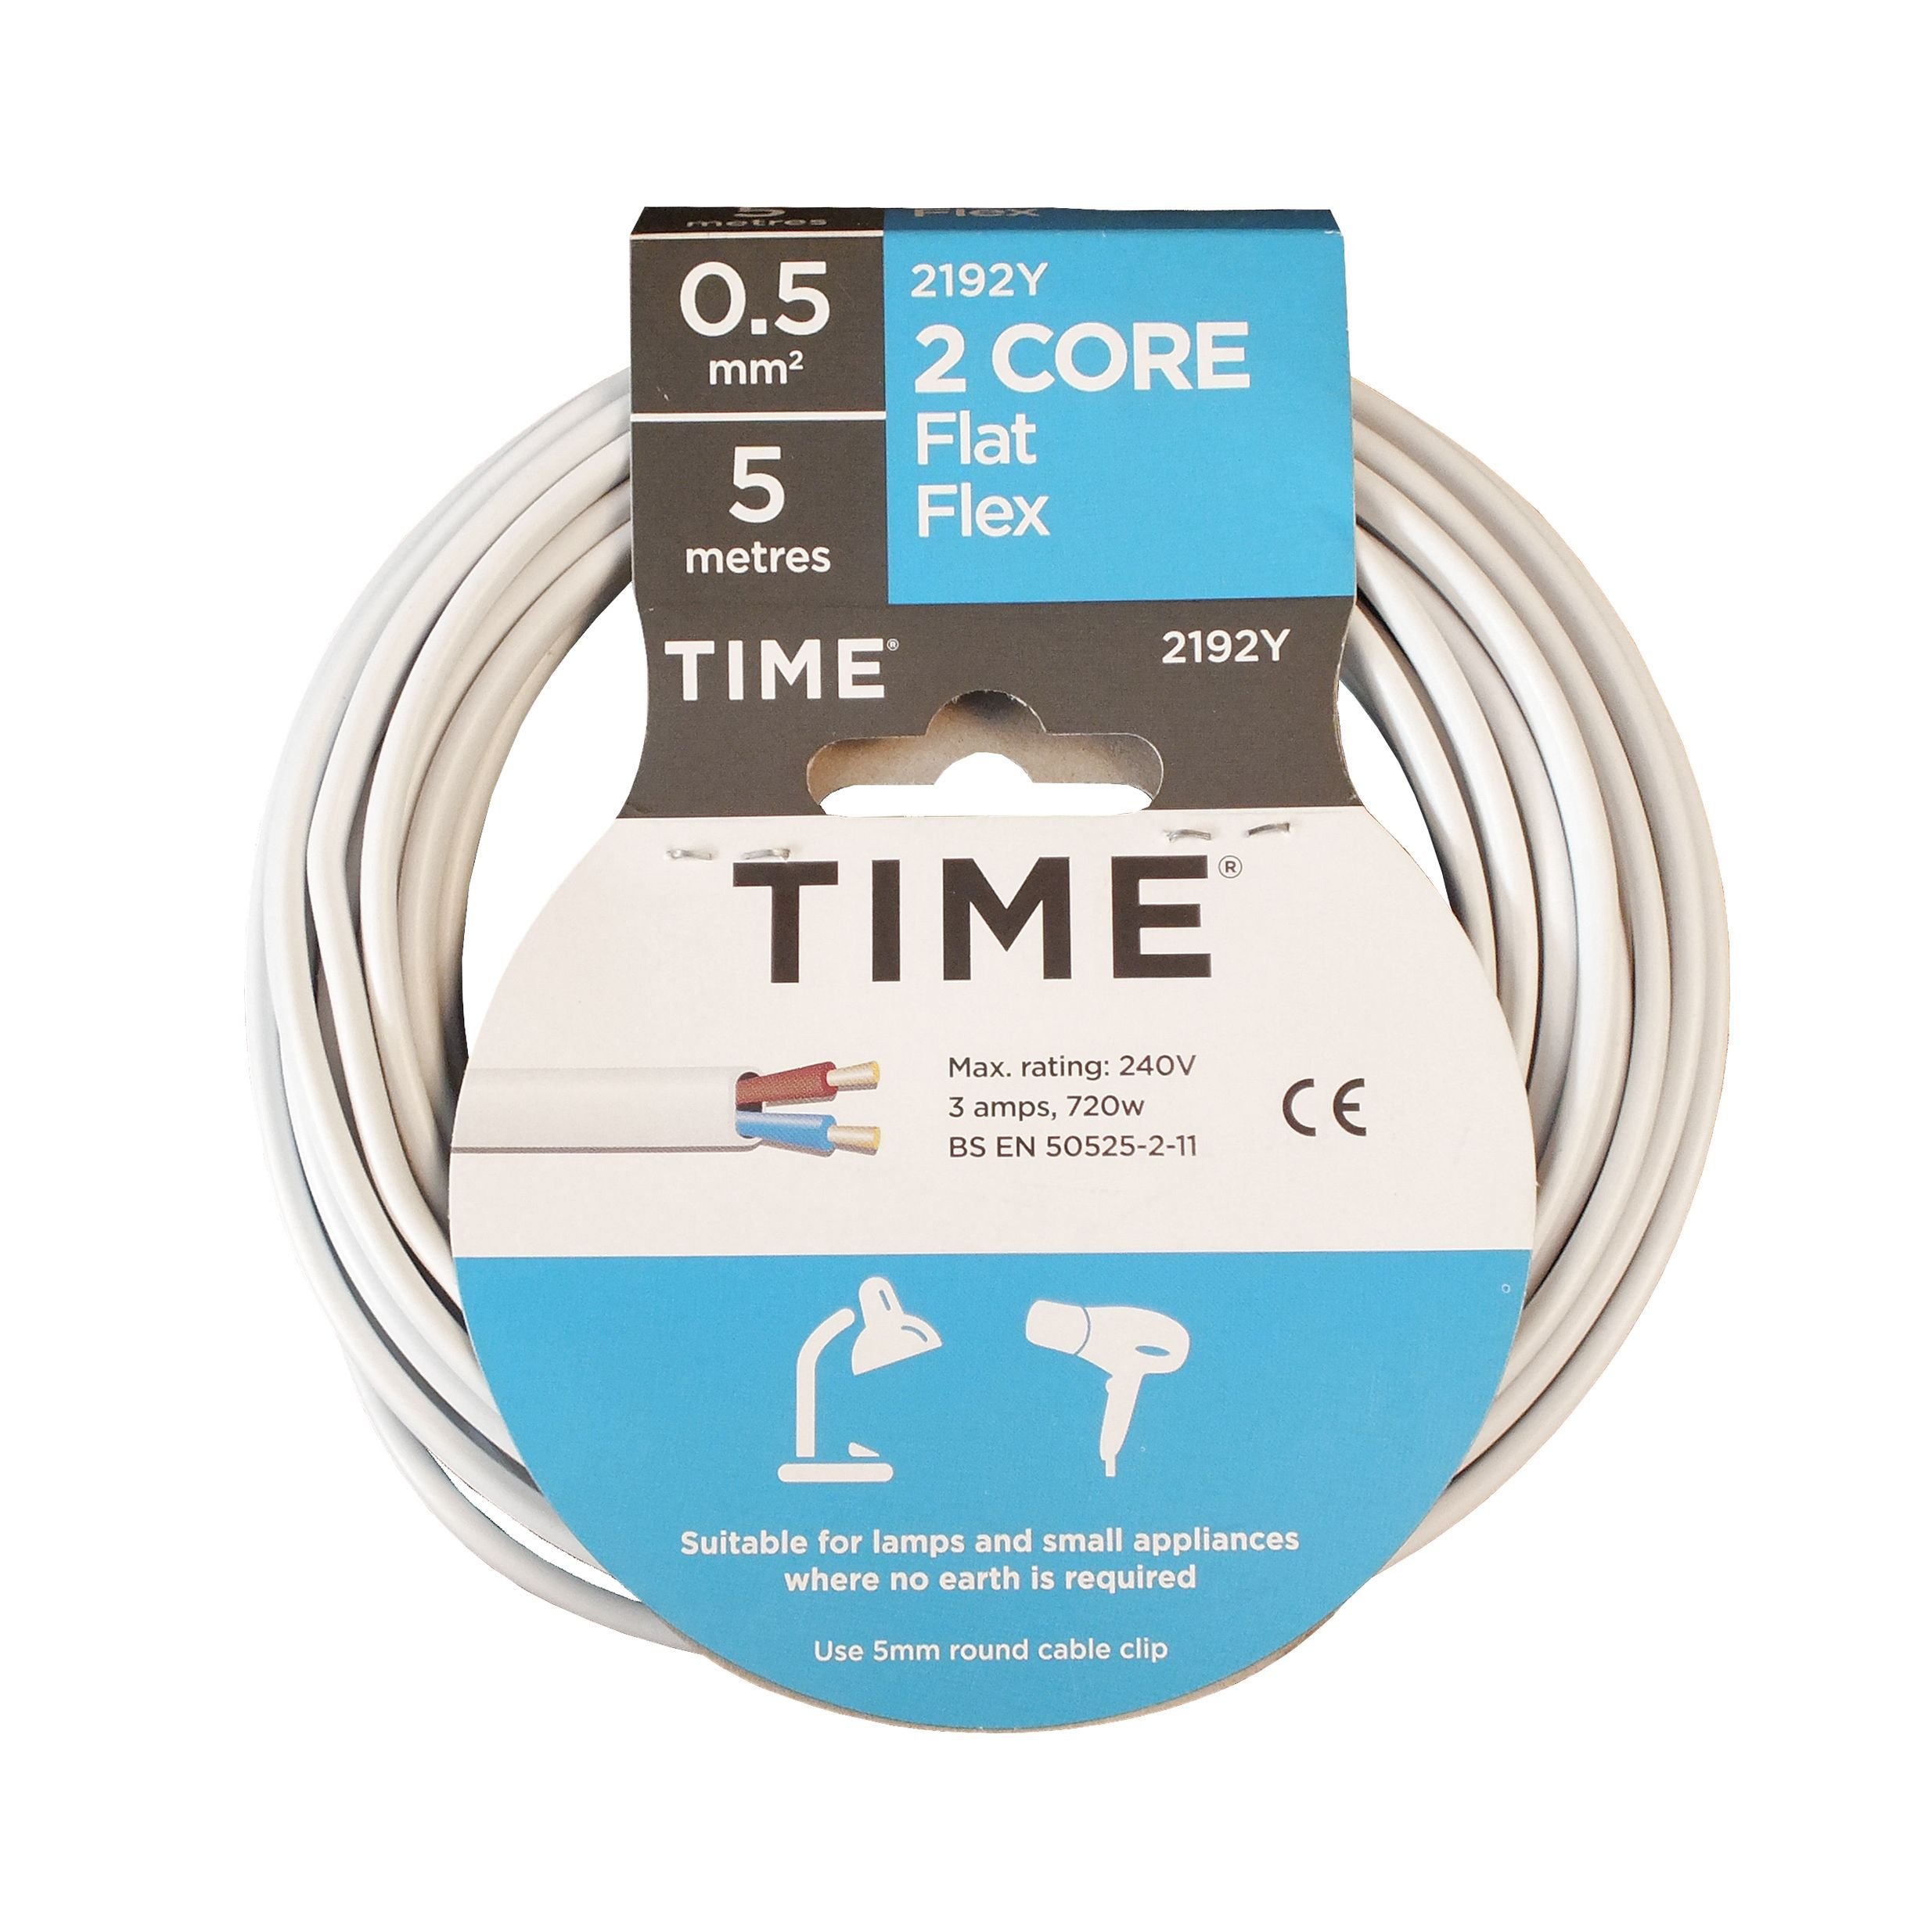 Time 2 core Flat flexible cable 0.5mm² 2192Y White 5 m | Departments ...